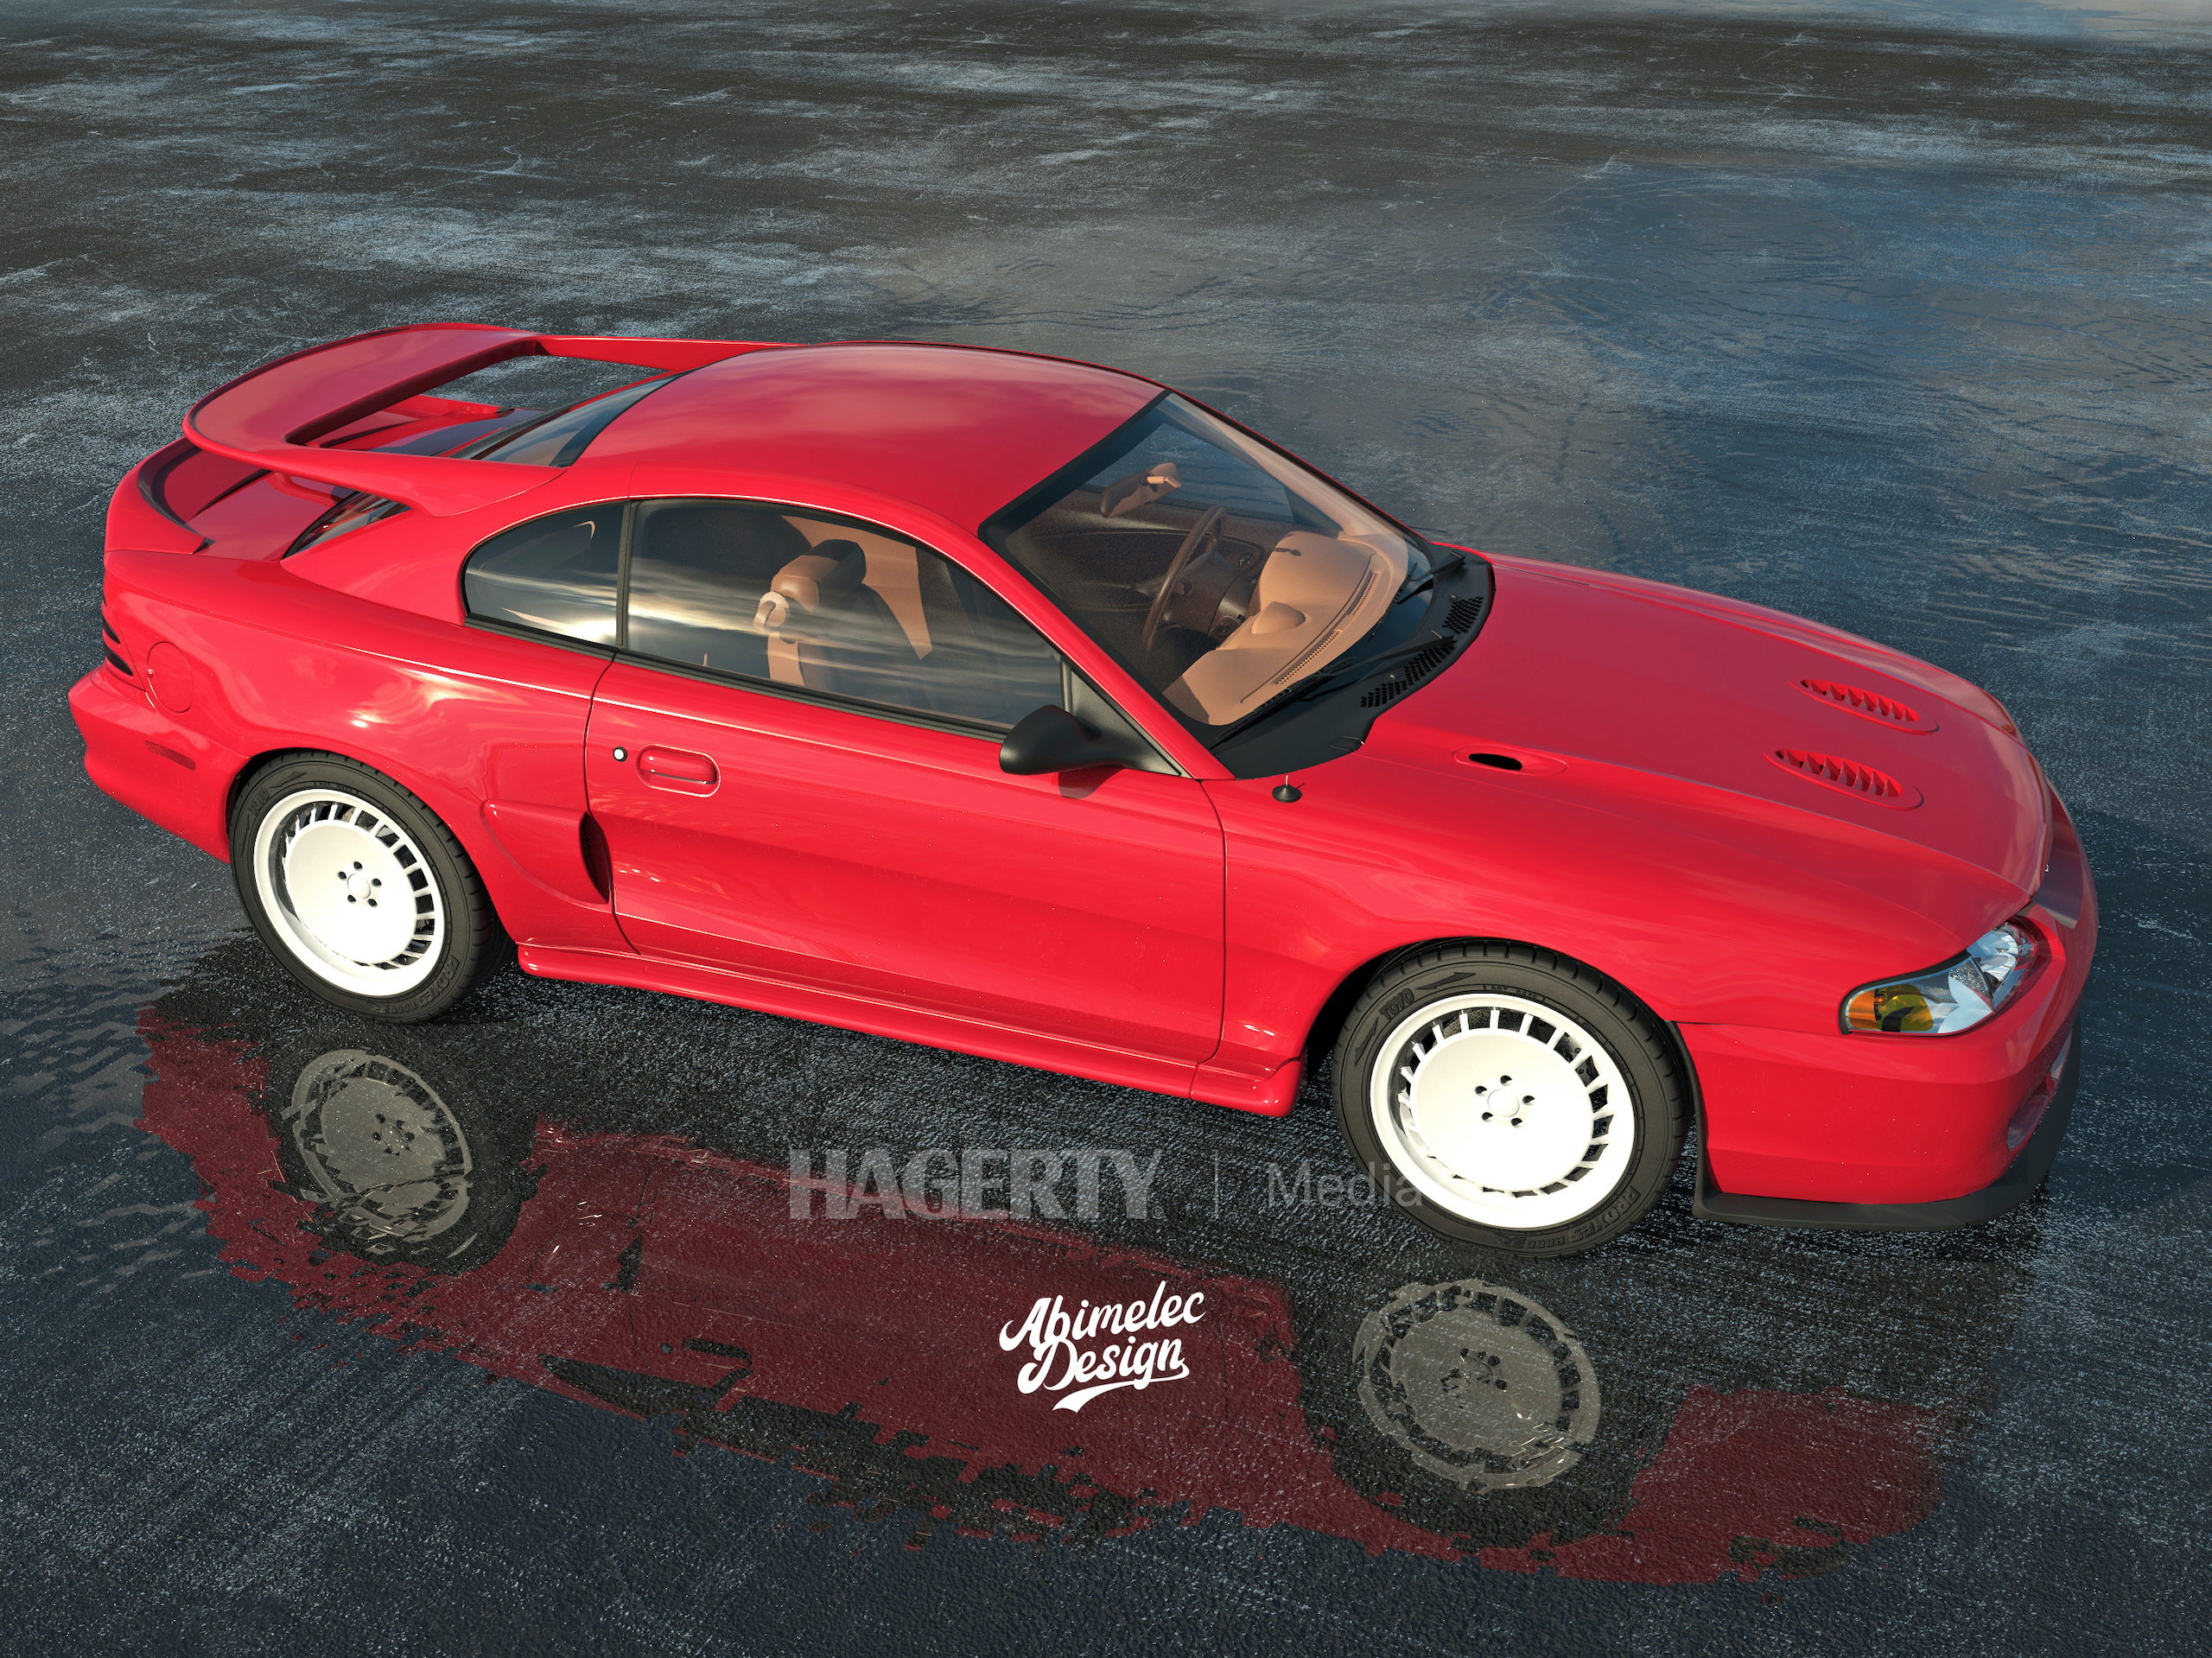 Mustang Cosworth red